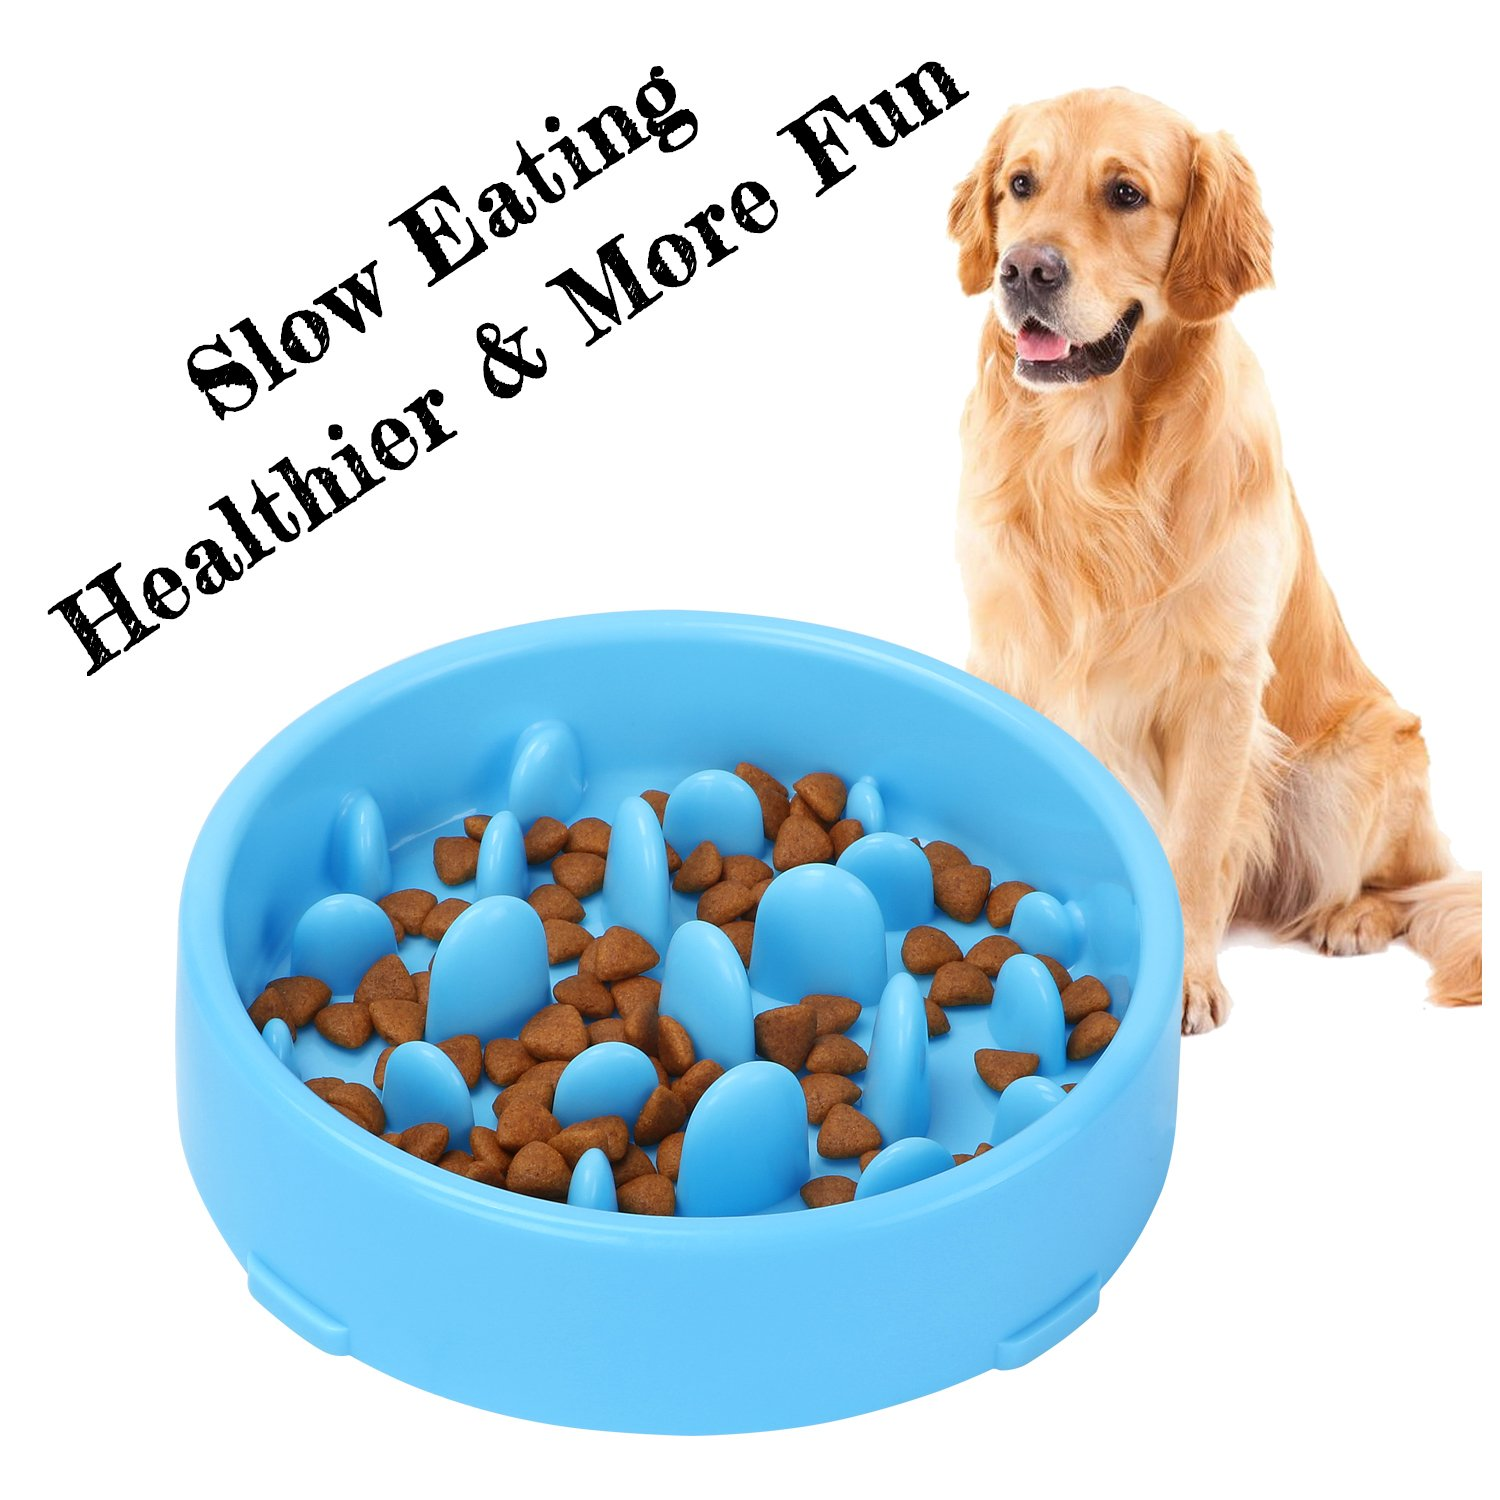 XZQTIVE Slow Feeder Bowl for Dog, Interactive Bloat Stop Dog Bowl Fun Feeder Non-Slip 51001